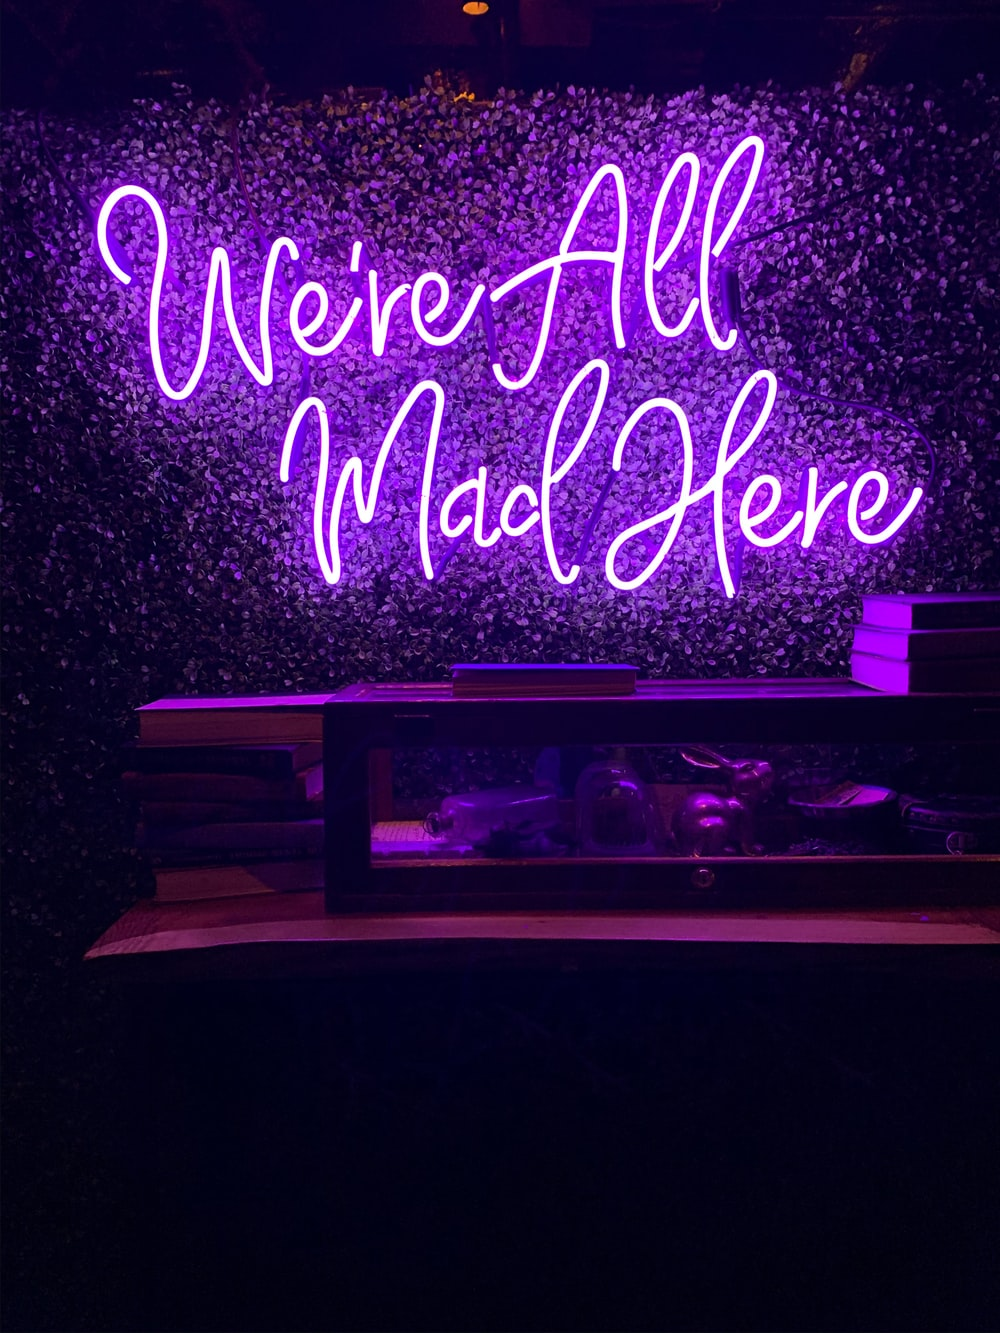 550 Neon Purple Pictures Download Free Images On Unsplash